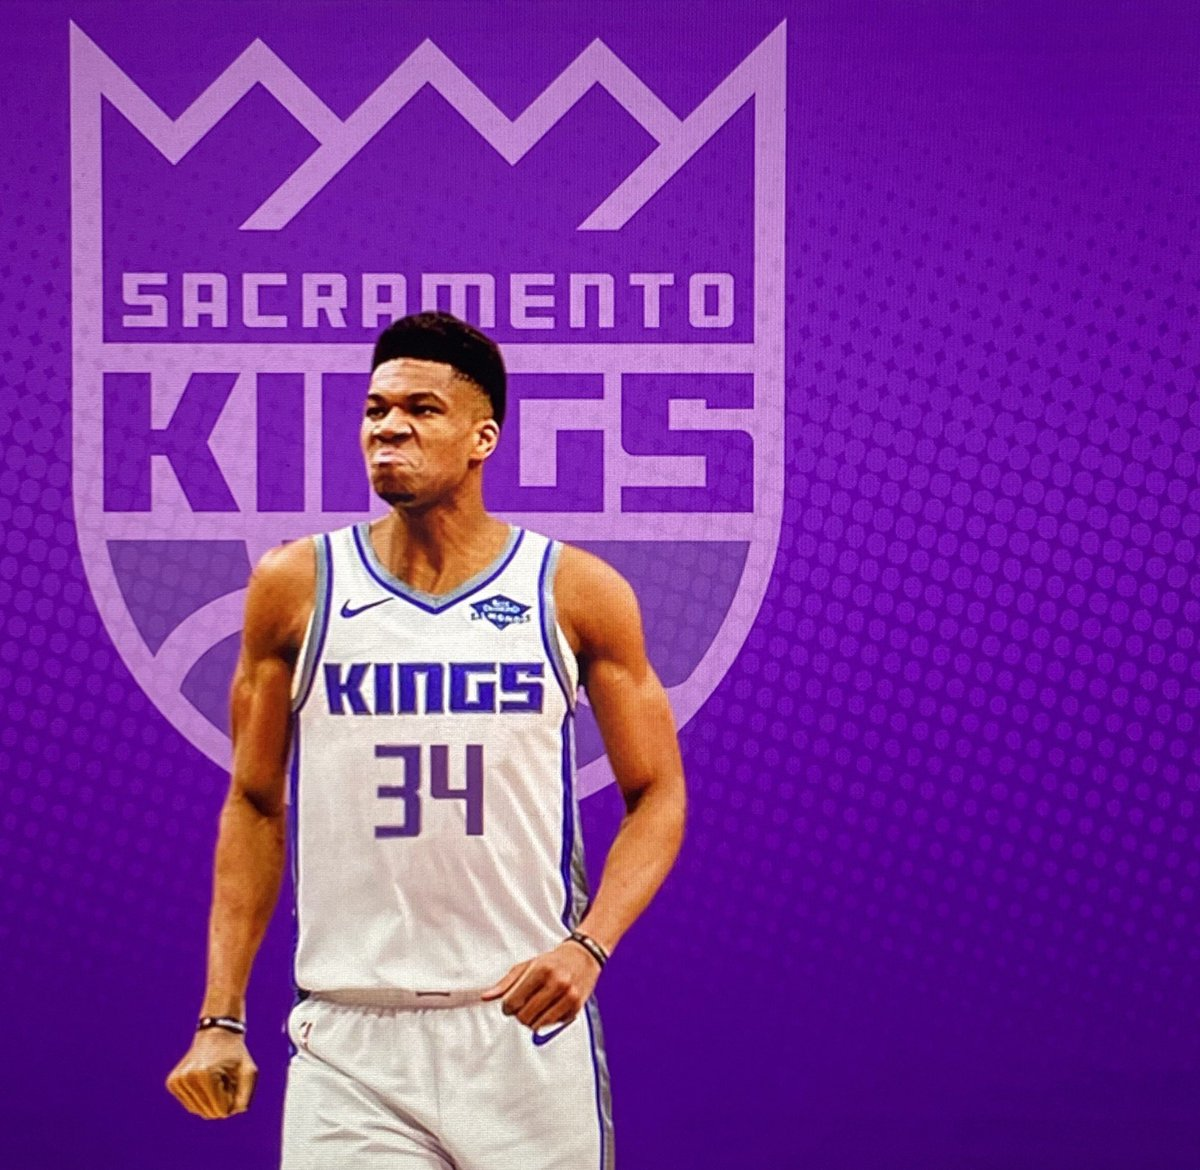 This Would be NASTY 😷👑  #Kings  #SacramentoProud https://t.co/FH0XrLTly6